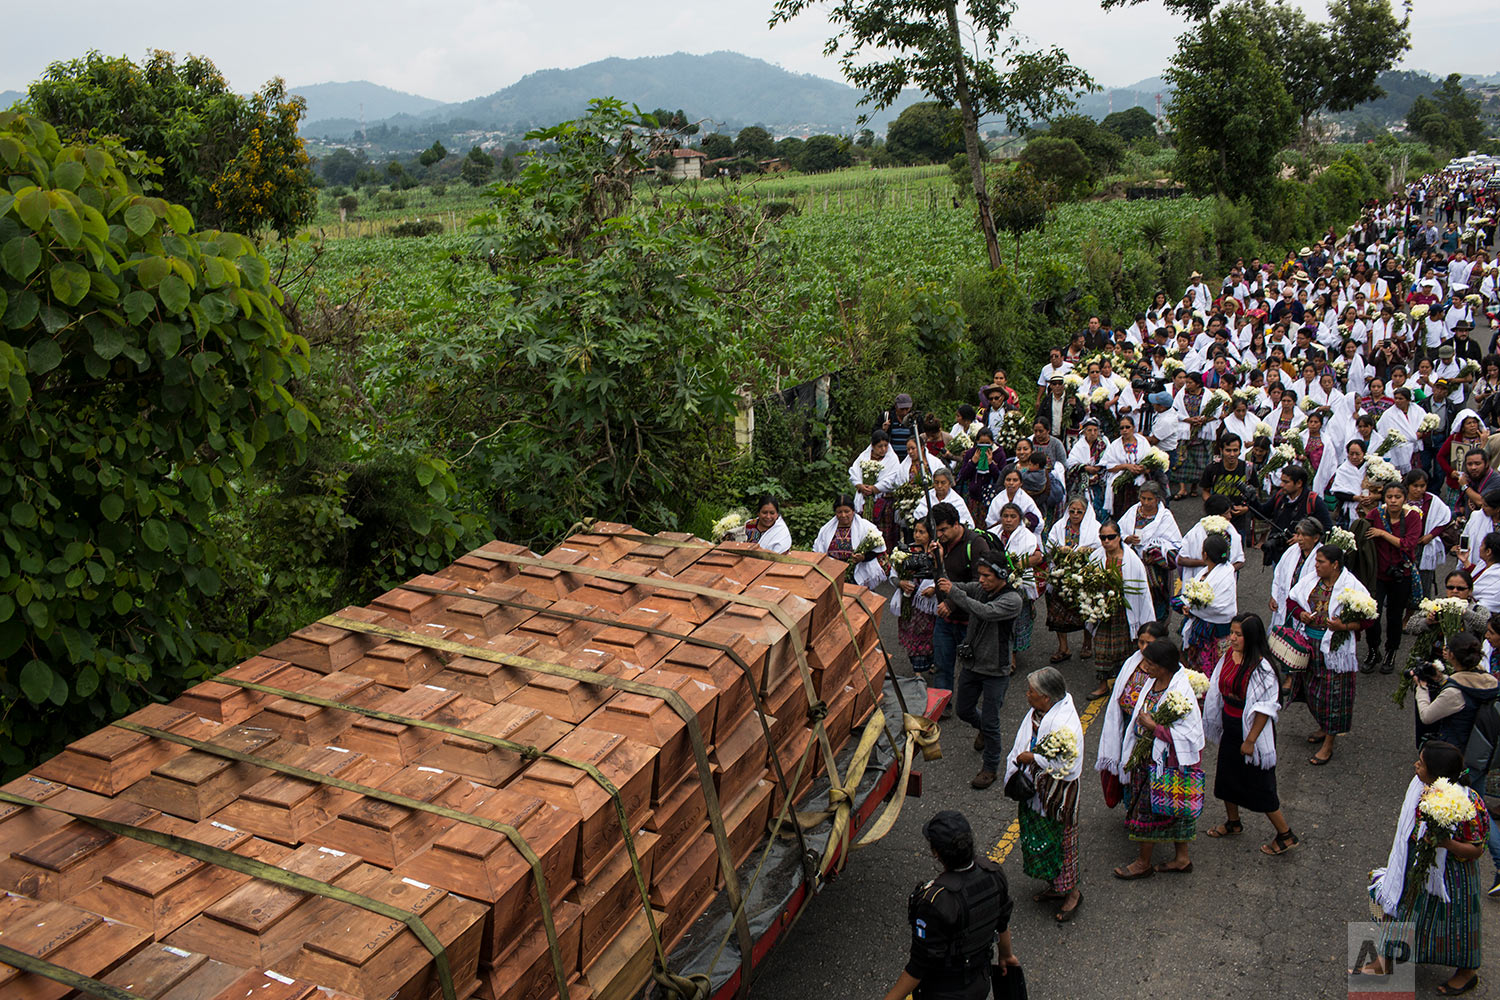 In this June 21, 2018 photo, villagers walk behind coffins during the funeral procession for 172 unidentified people who were exhumed from what was once a military camp, before burying them in the same area where they were discovered in San Juan Comalapa, Guatemala. (AP Photo/Rodrigo Abd)